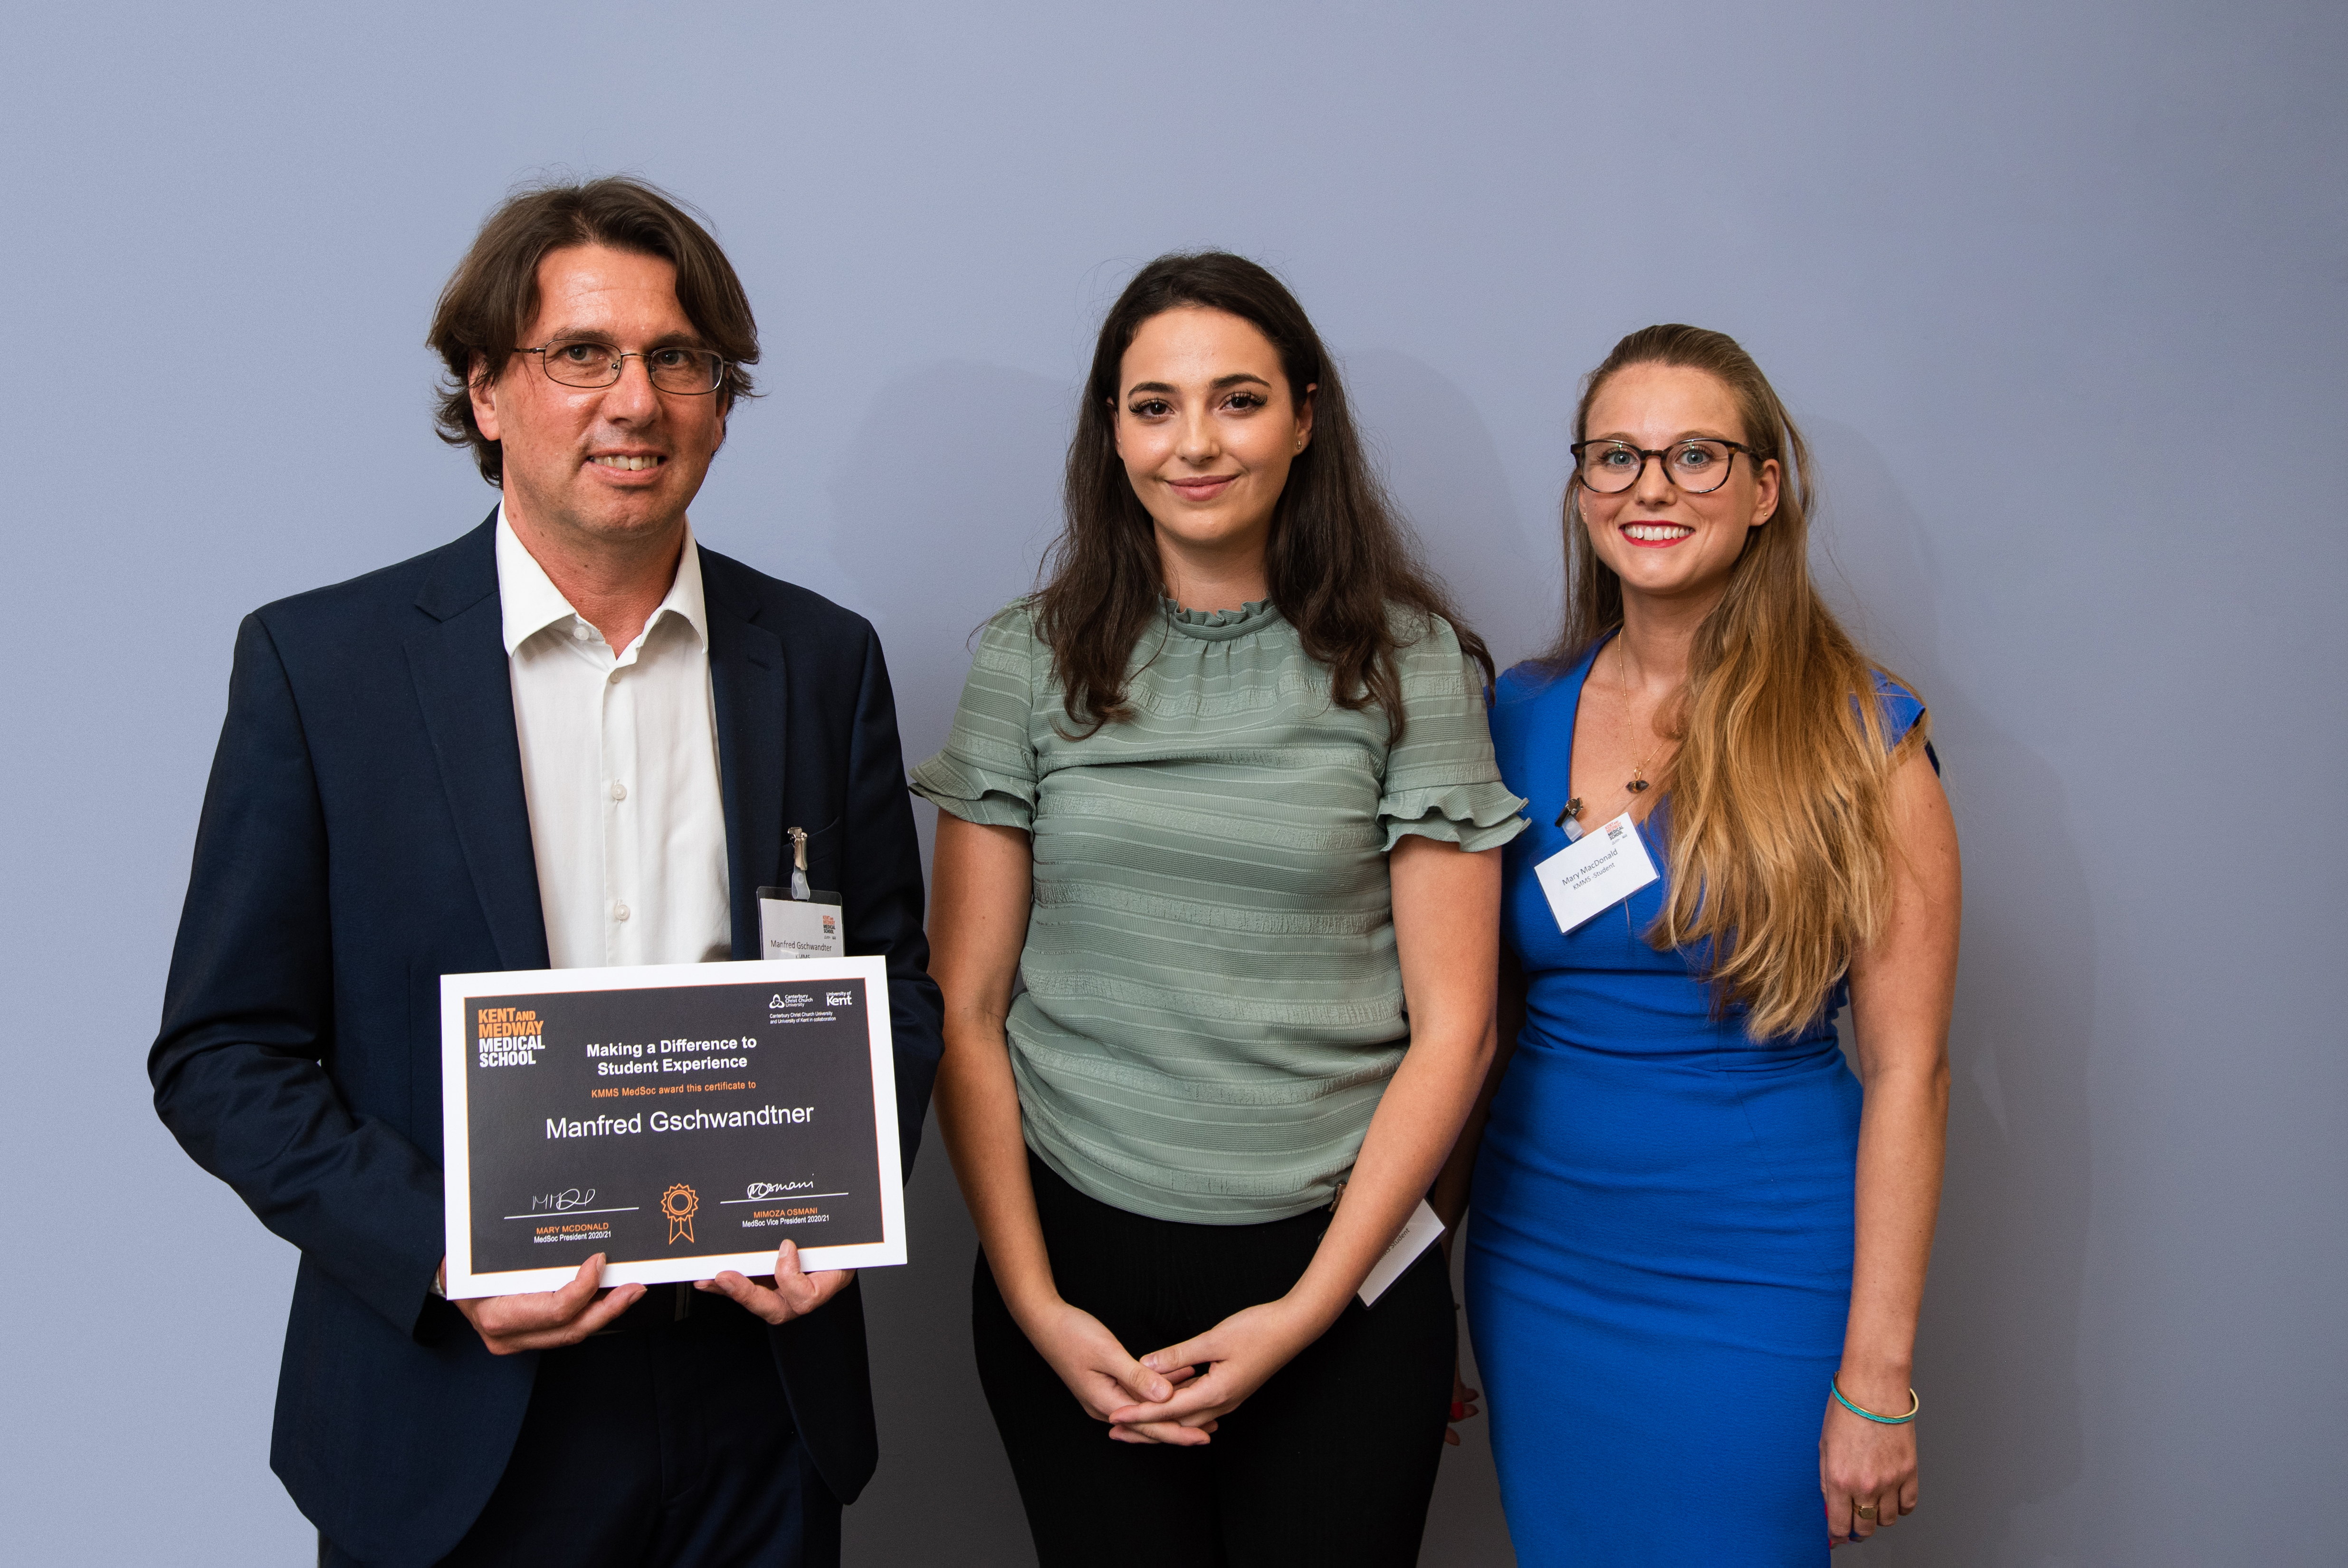 Manfred Gschwandtner is presented his award by Mimoza Osmani, Vice-President and Mary McDonald, President, MedSoc.